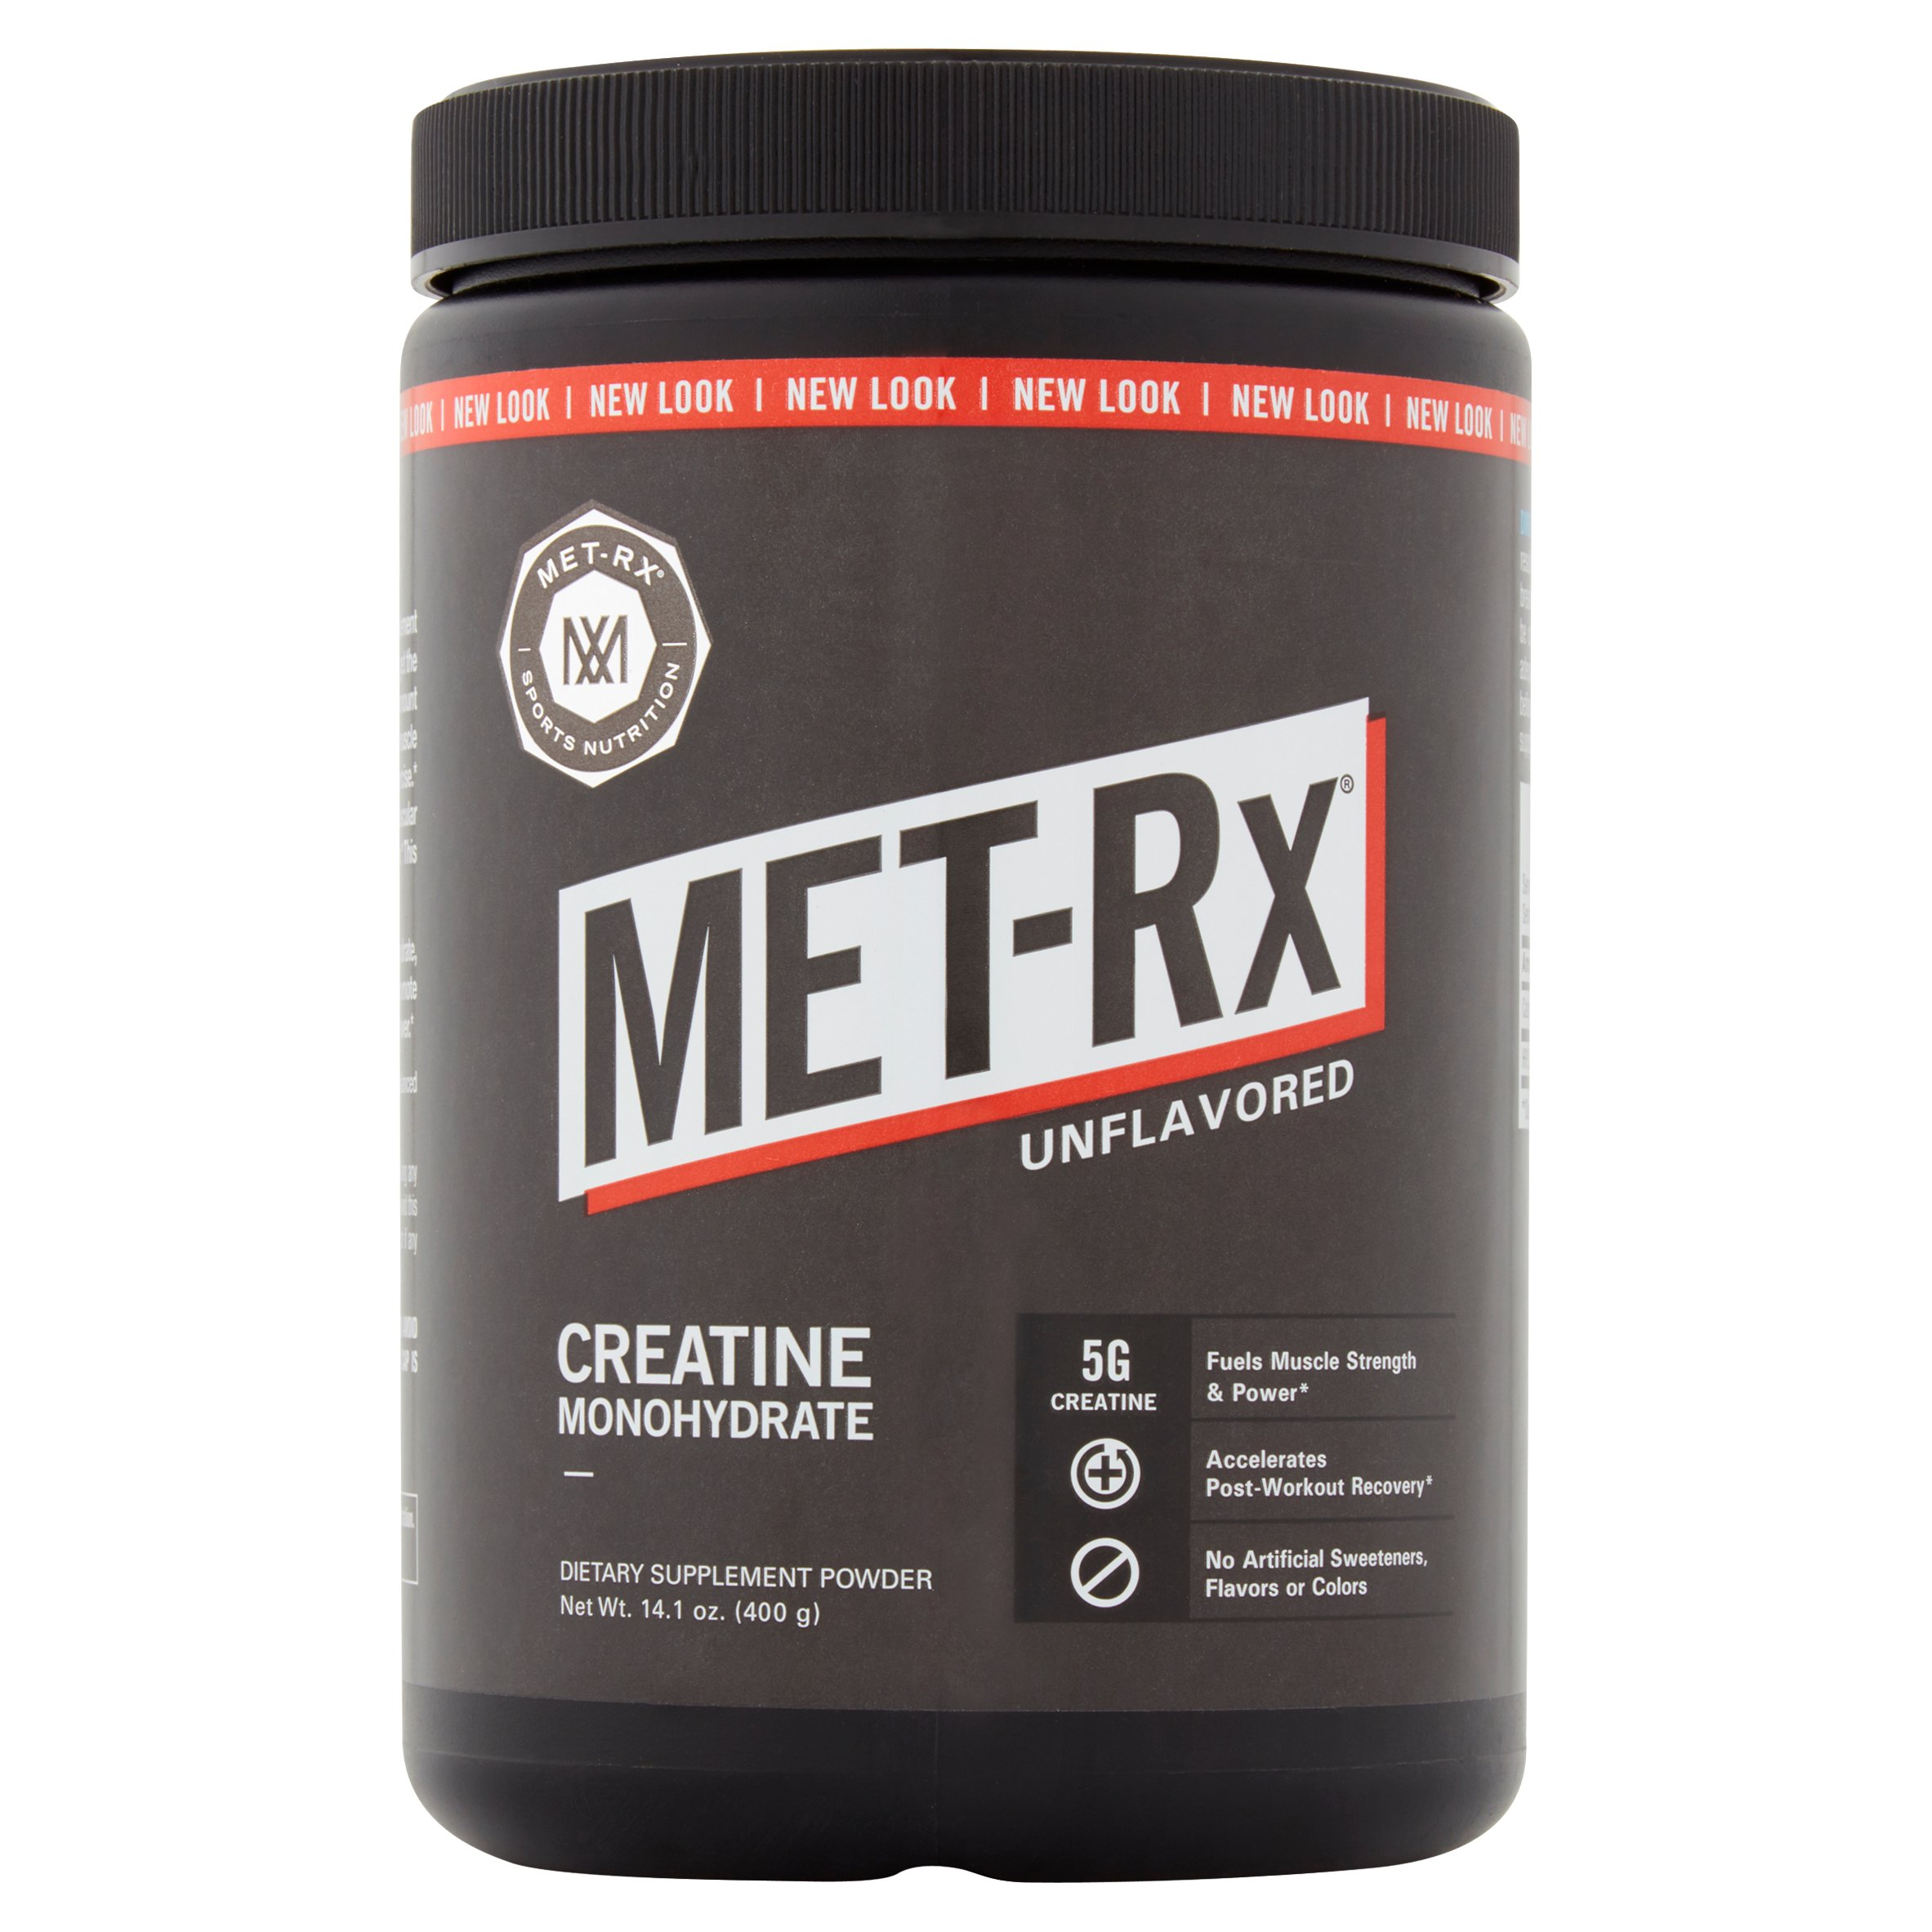 MET-Rx Creatine 100% Pure Creatine Monohydrate Dietary Supplement Powder, 14.1 oz